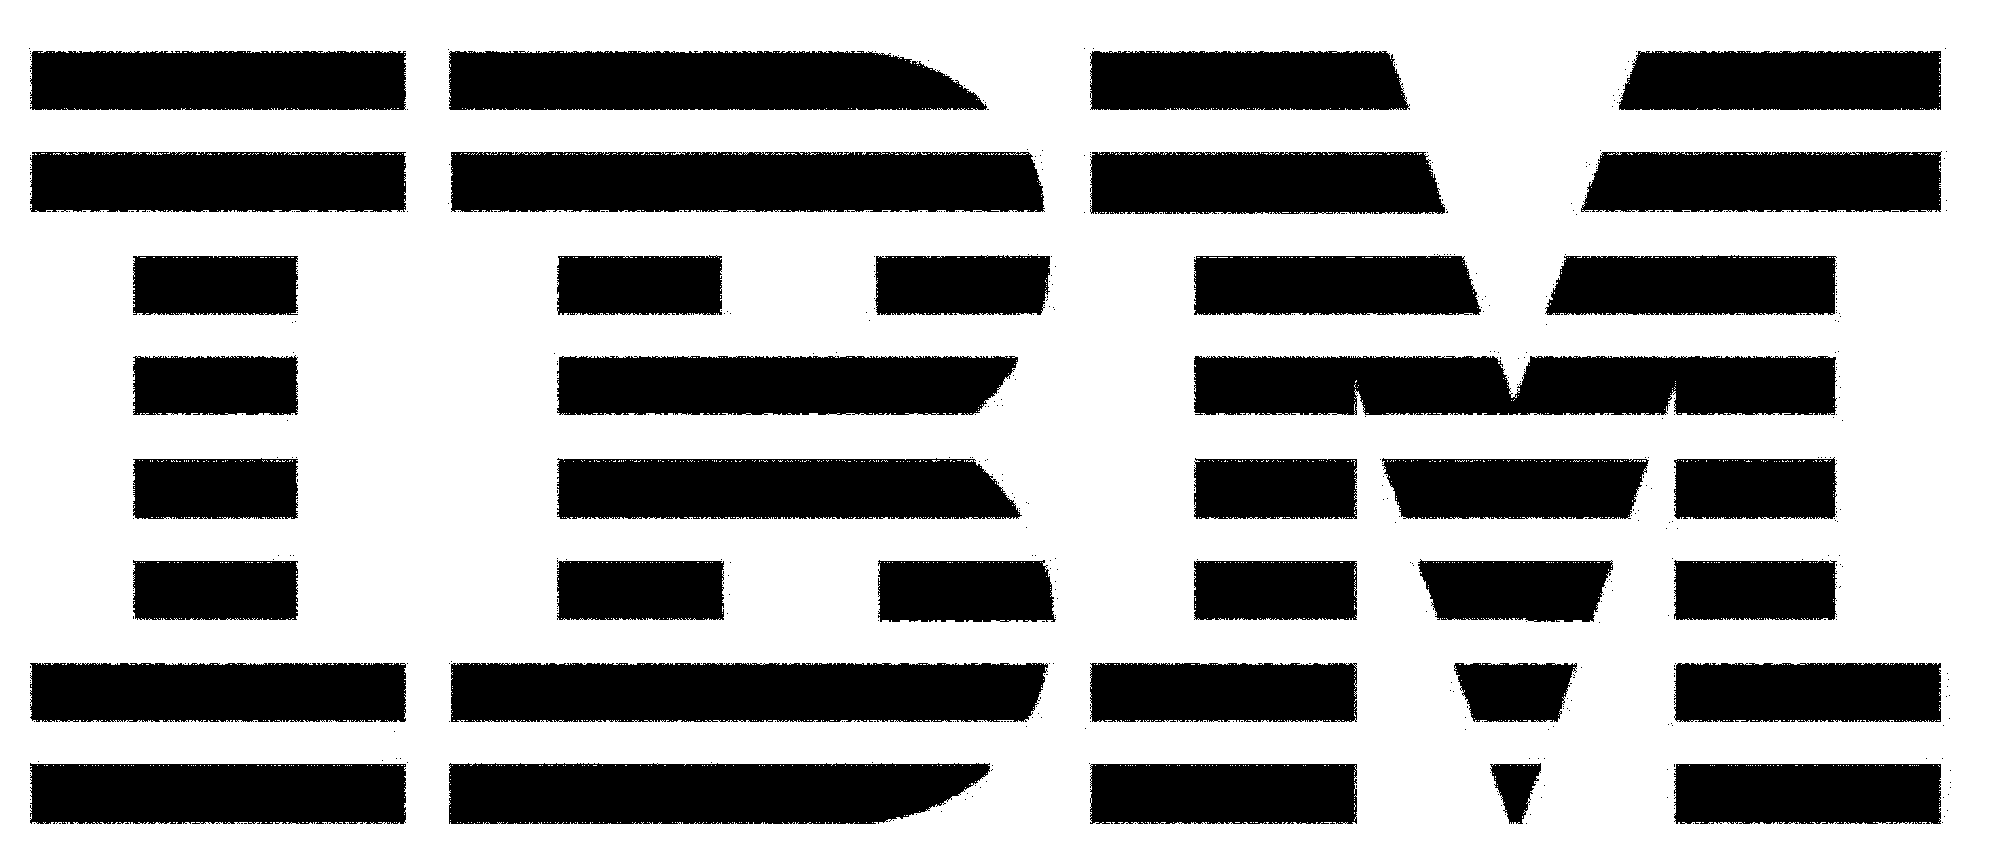 Reference from a talent of the program 16/17 - Ibm PNG